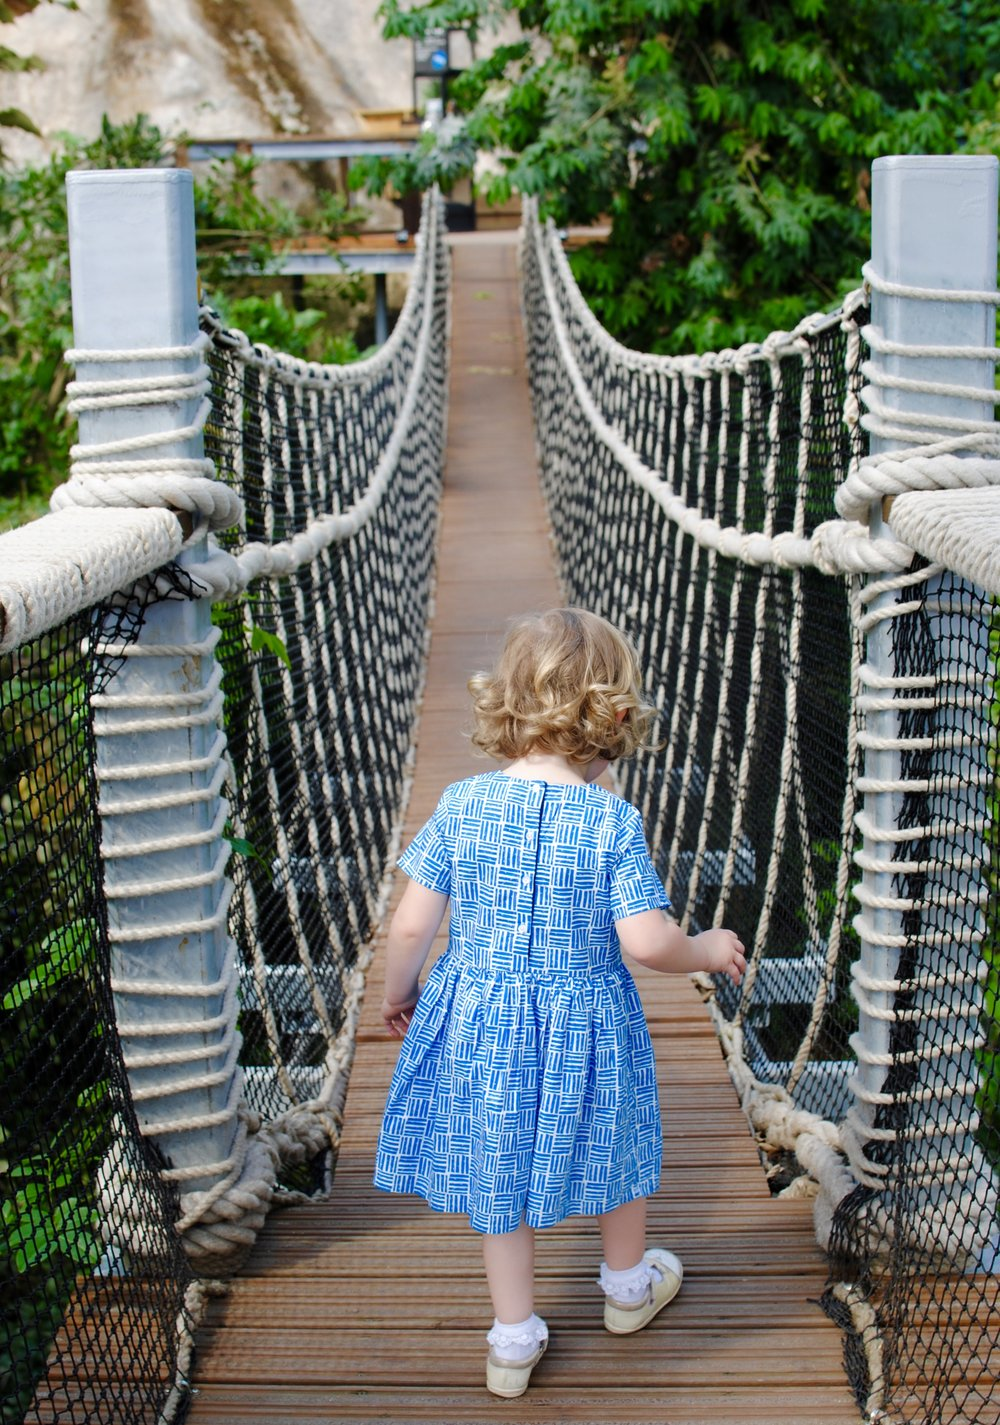 My little monkey had great fun bouncing over the Canopy Rope Bridge.